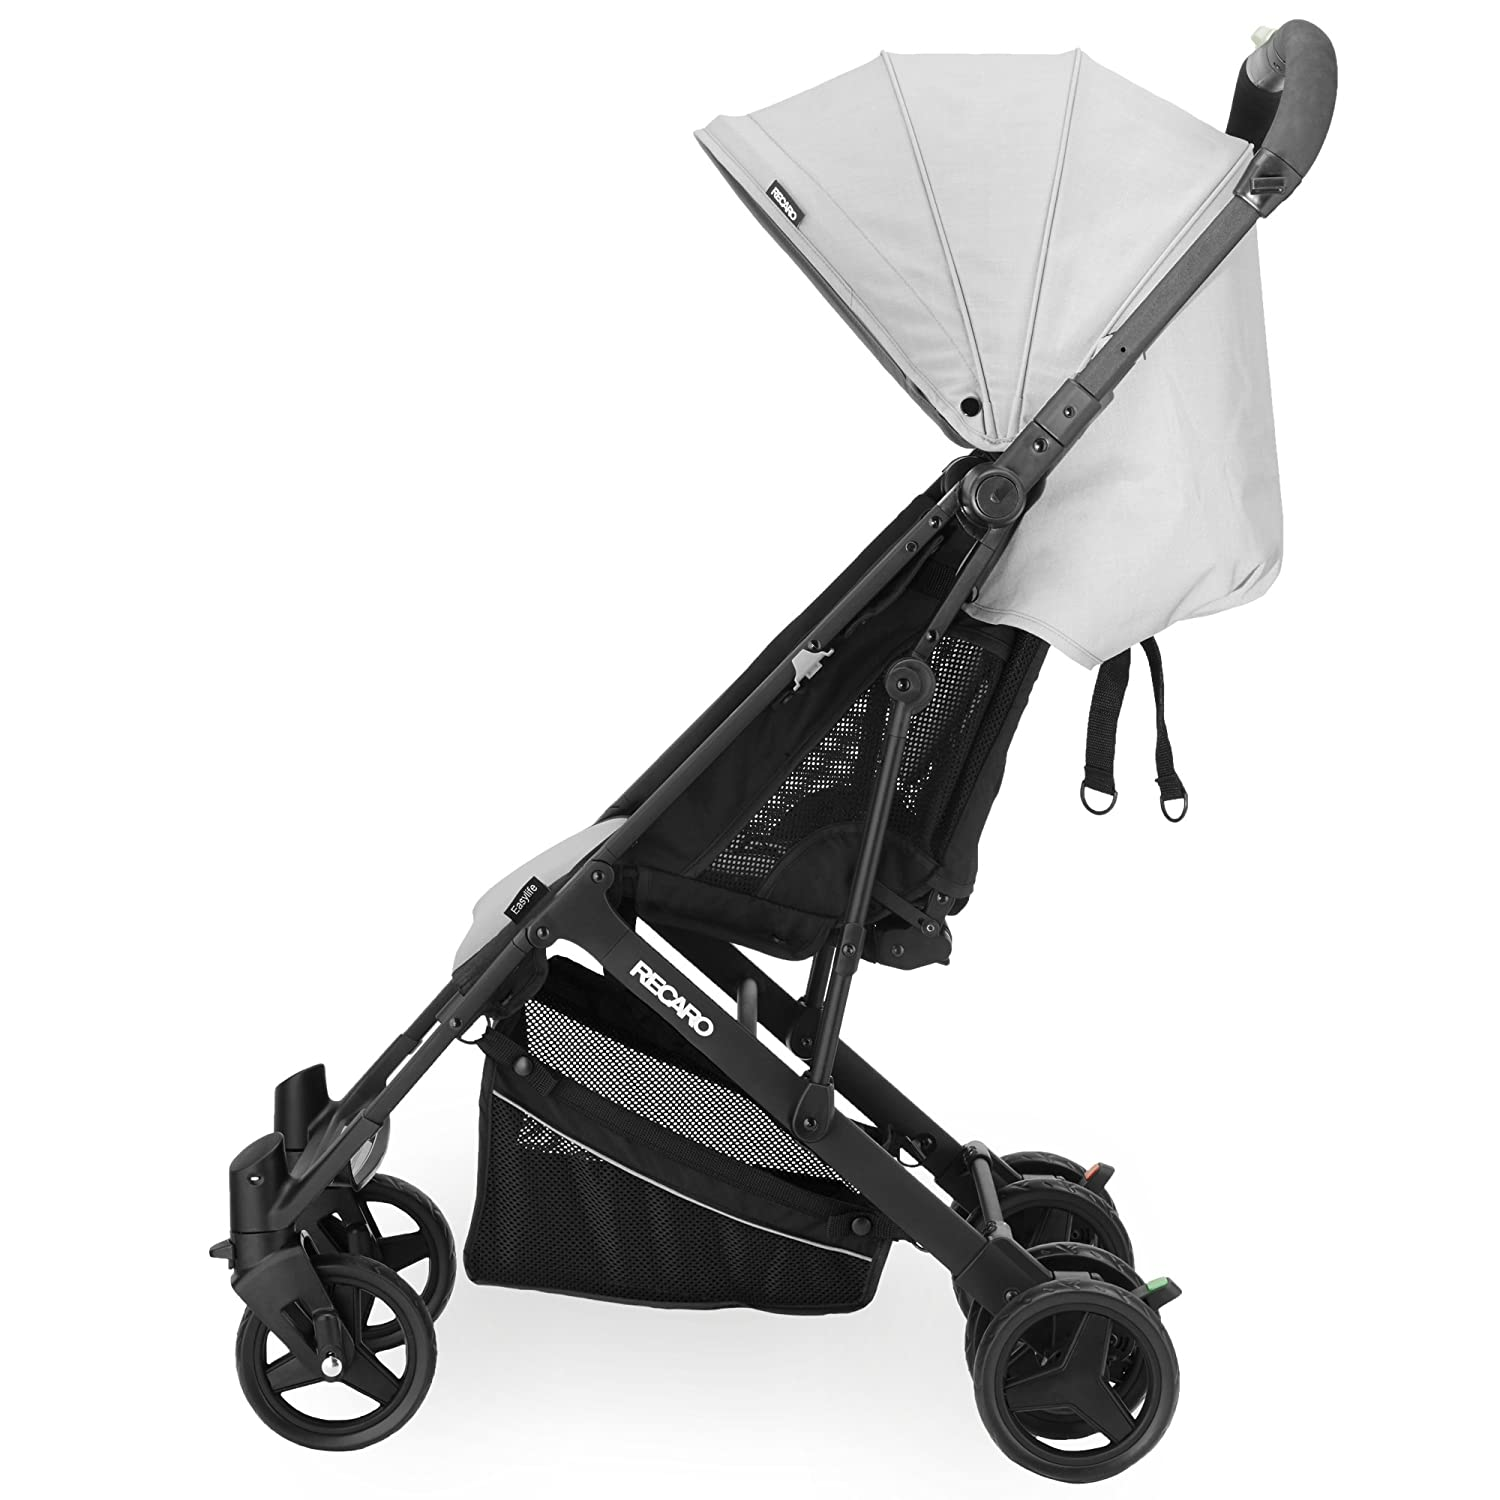 RECARO Easylife Ultra-Lightweight Stroller, Onyx by Recaro: Amazon.es: Bebé